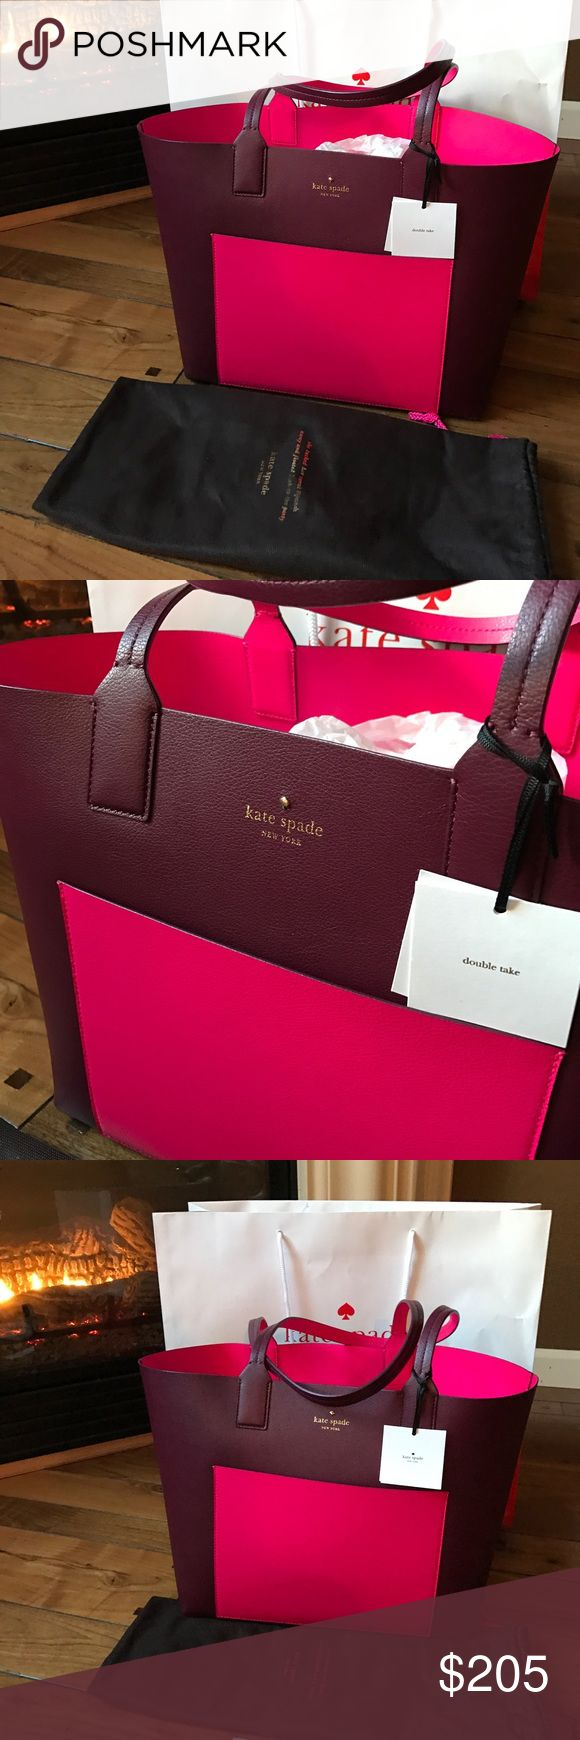 Kate spade reversible tote with Dustbag This is reversible tote burgundy and fuschia combination. And it comes with the dustbag. 2 purses in 1. Neiman Marcus has this purse on sale for $223 plus tax. kate spade Bags Totes